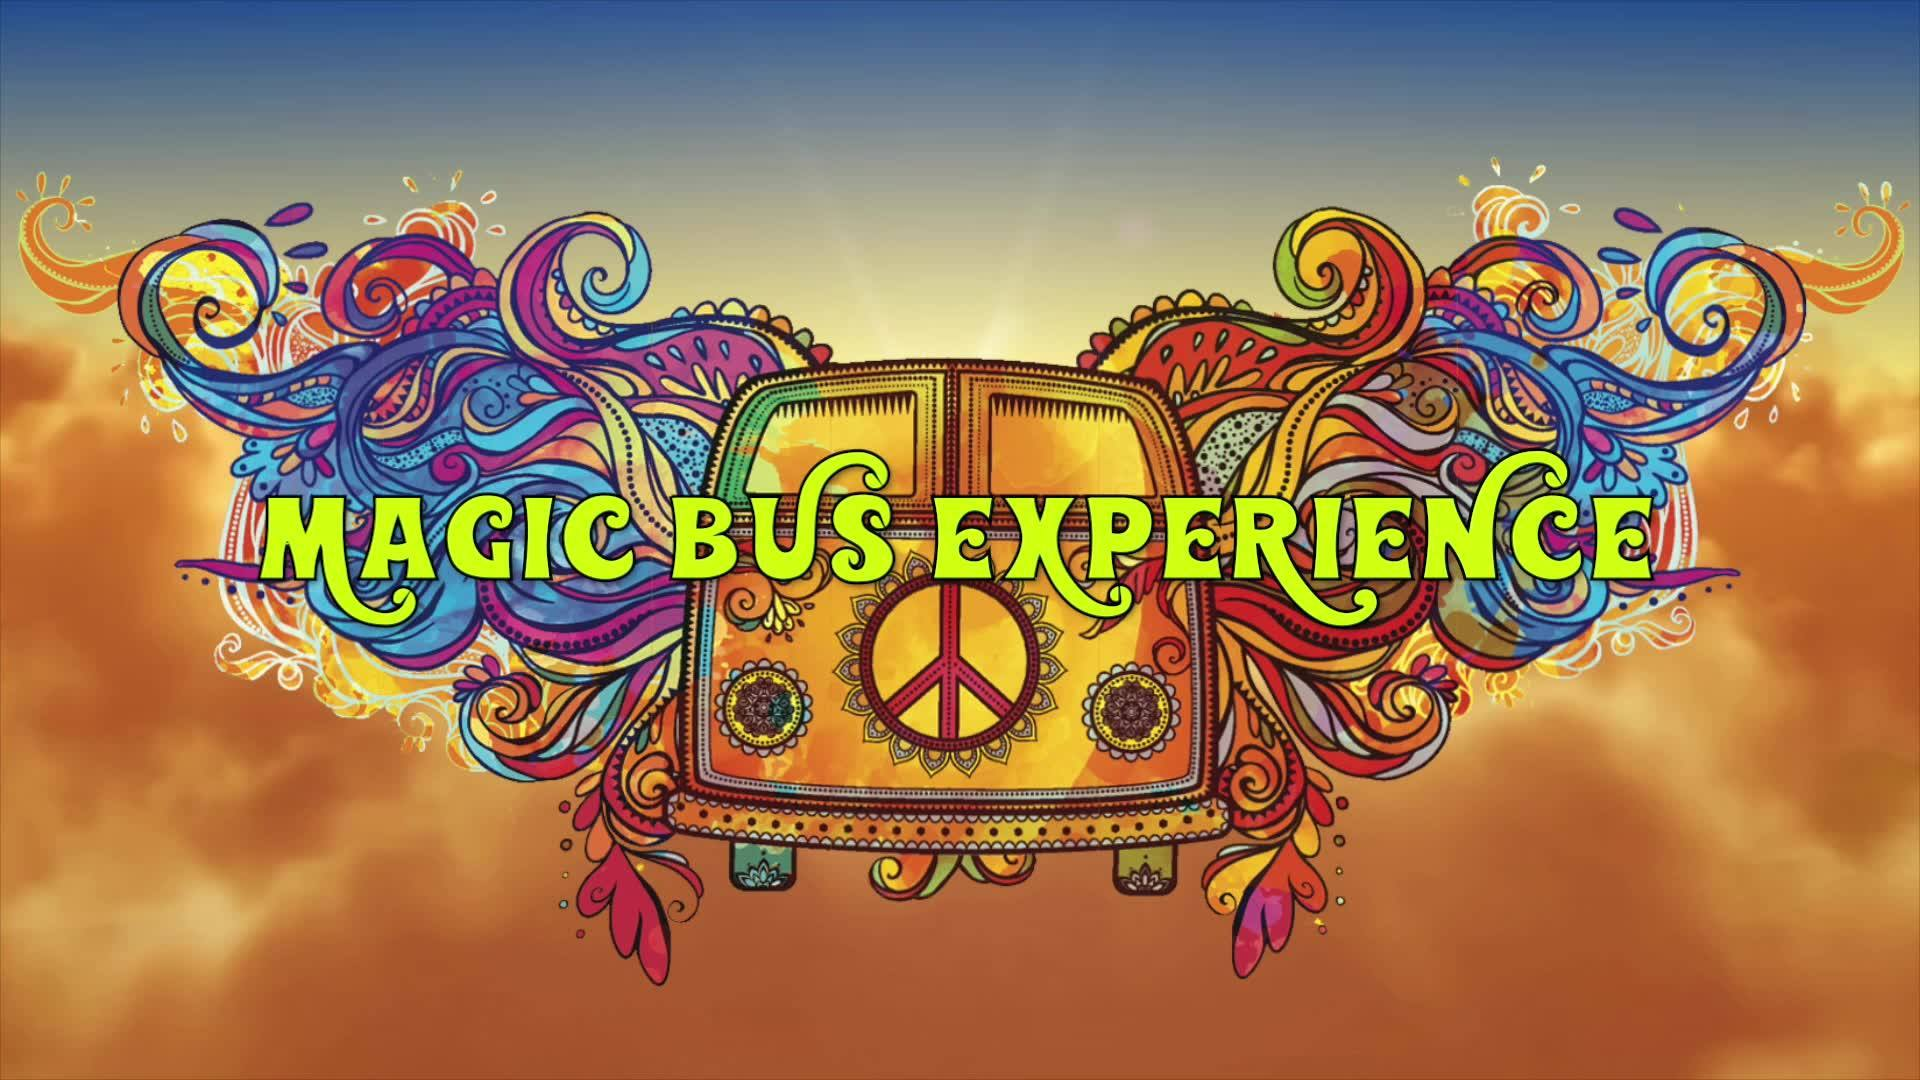 Magic Bus Experience at the Globe Theatre in DTLA